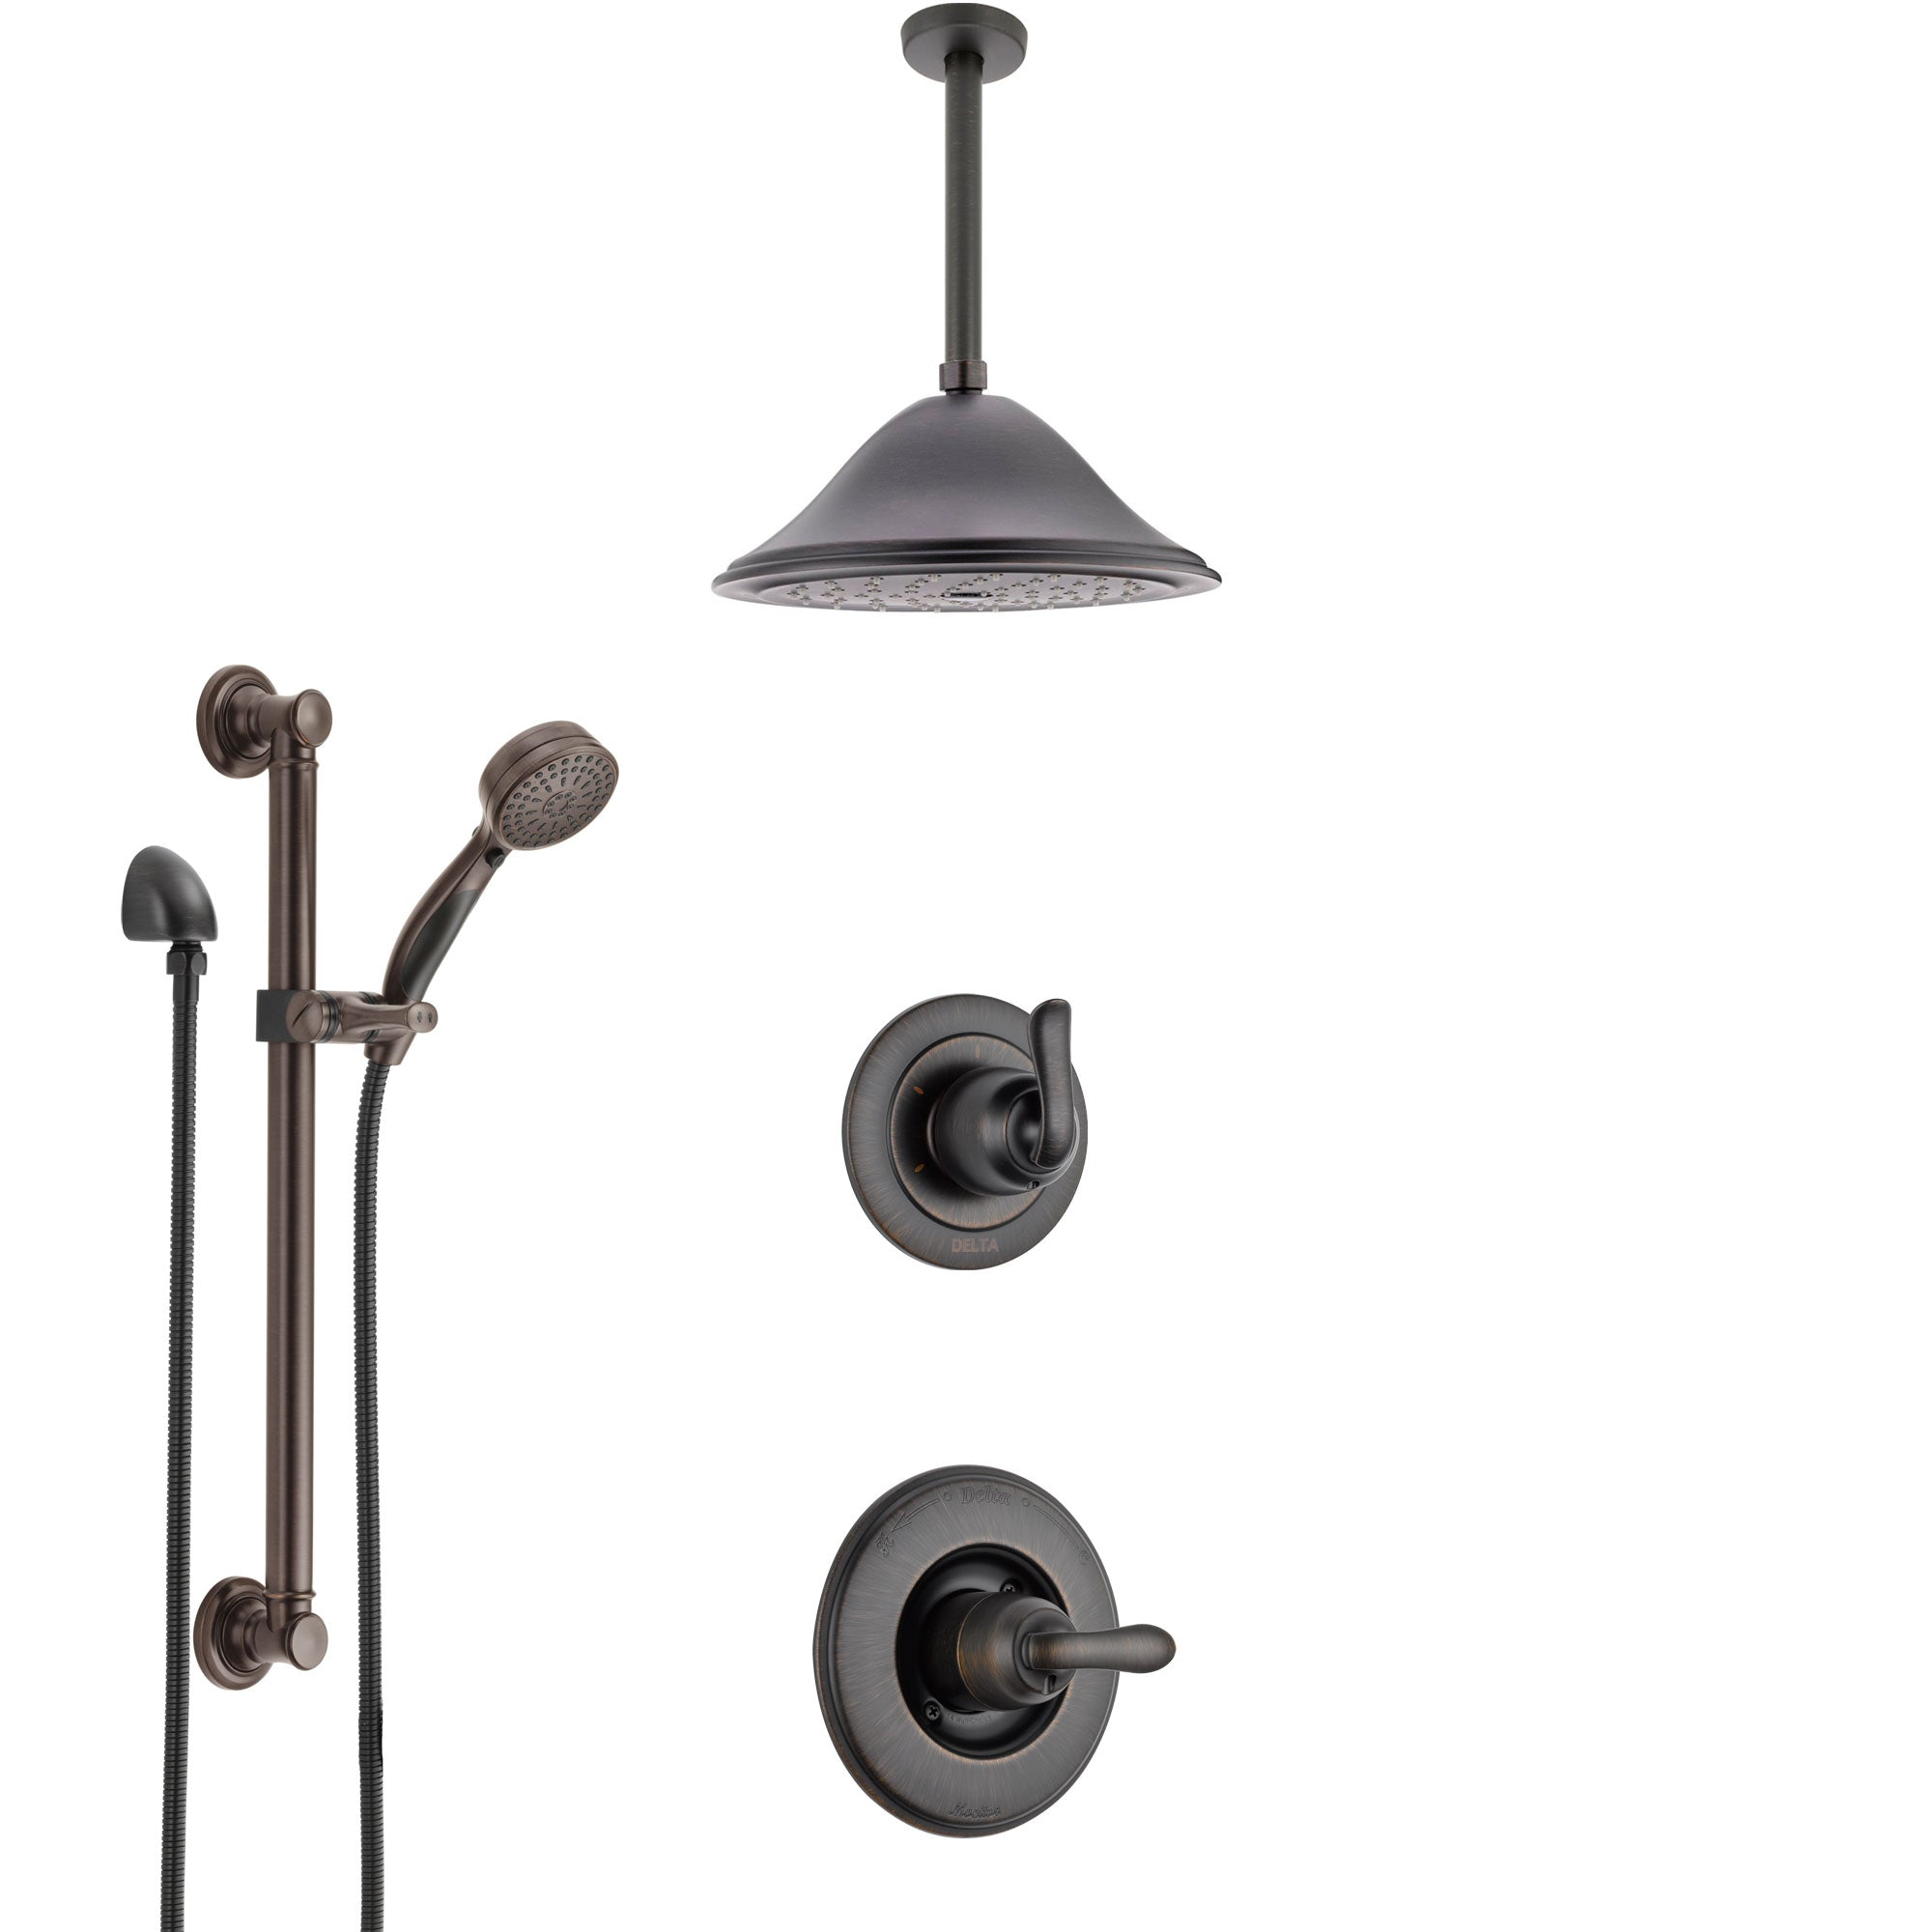 Delta Linden Venetian Bronze Shower System with Control Handle, 3-Setting Diverter, Ceiling Mount Showerhead, and Hand Shower with Grab Bar SS1494RB4